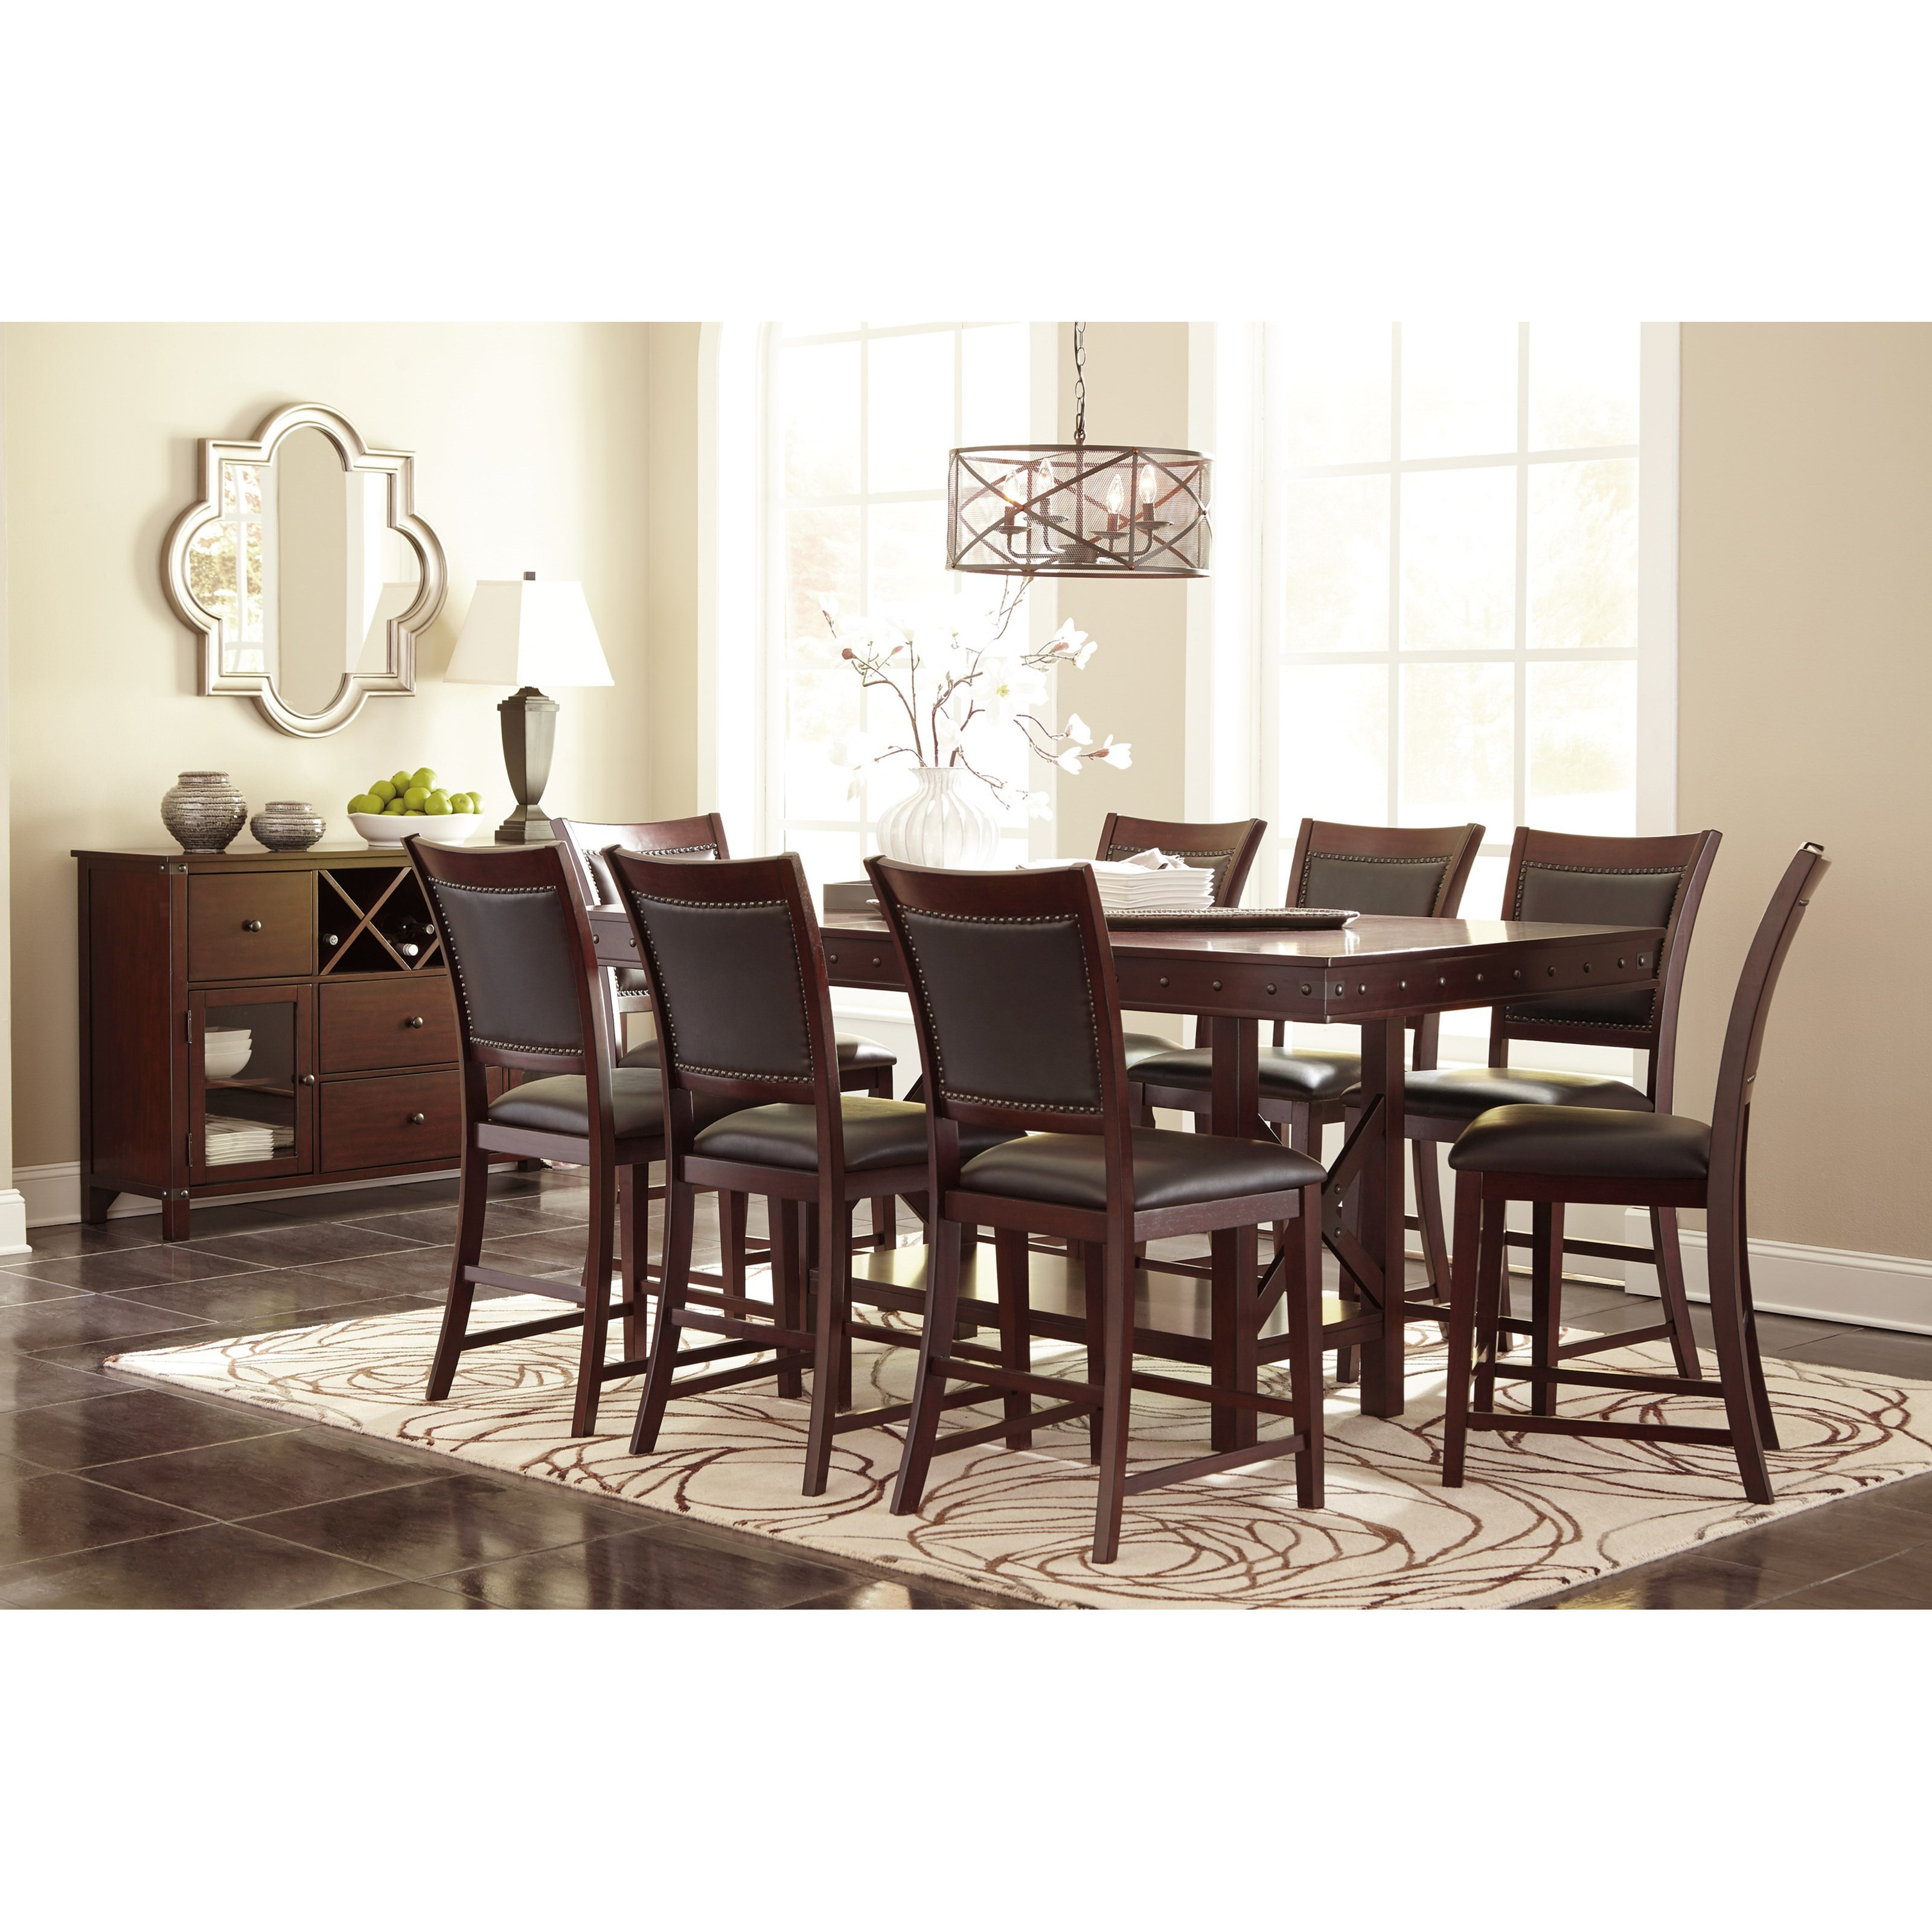 Signature design by ashley collenburg casual dining room for Casual dining room furniture